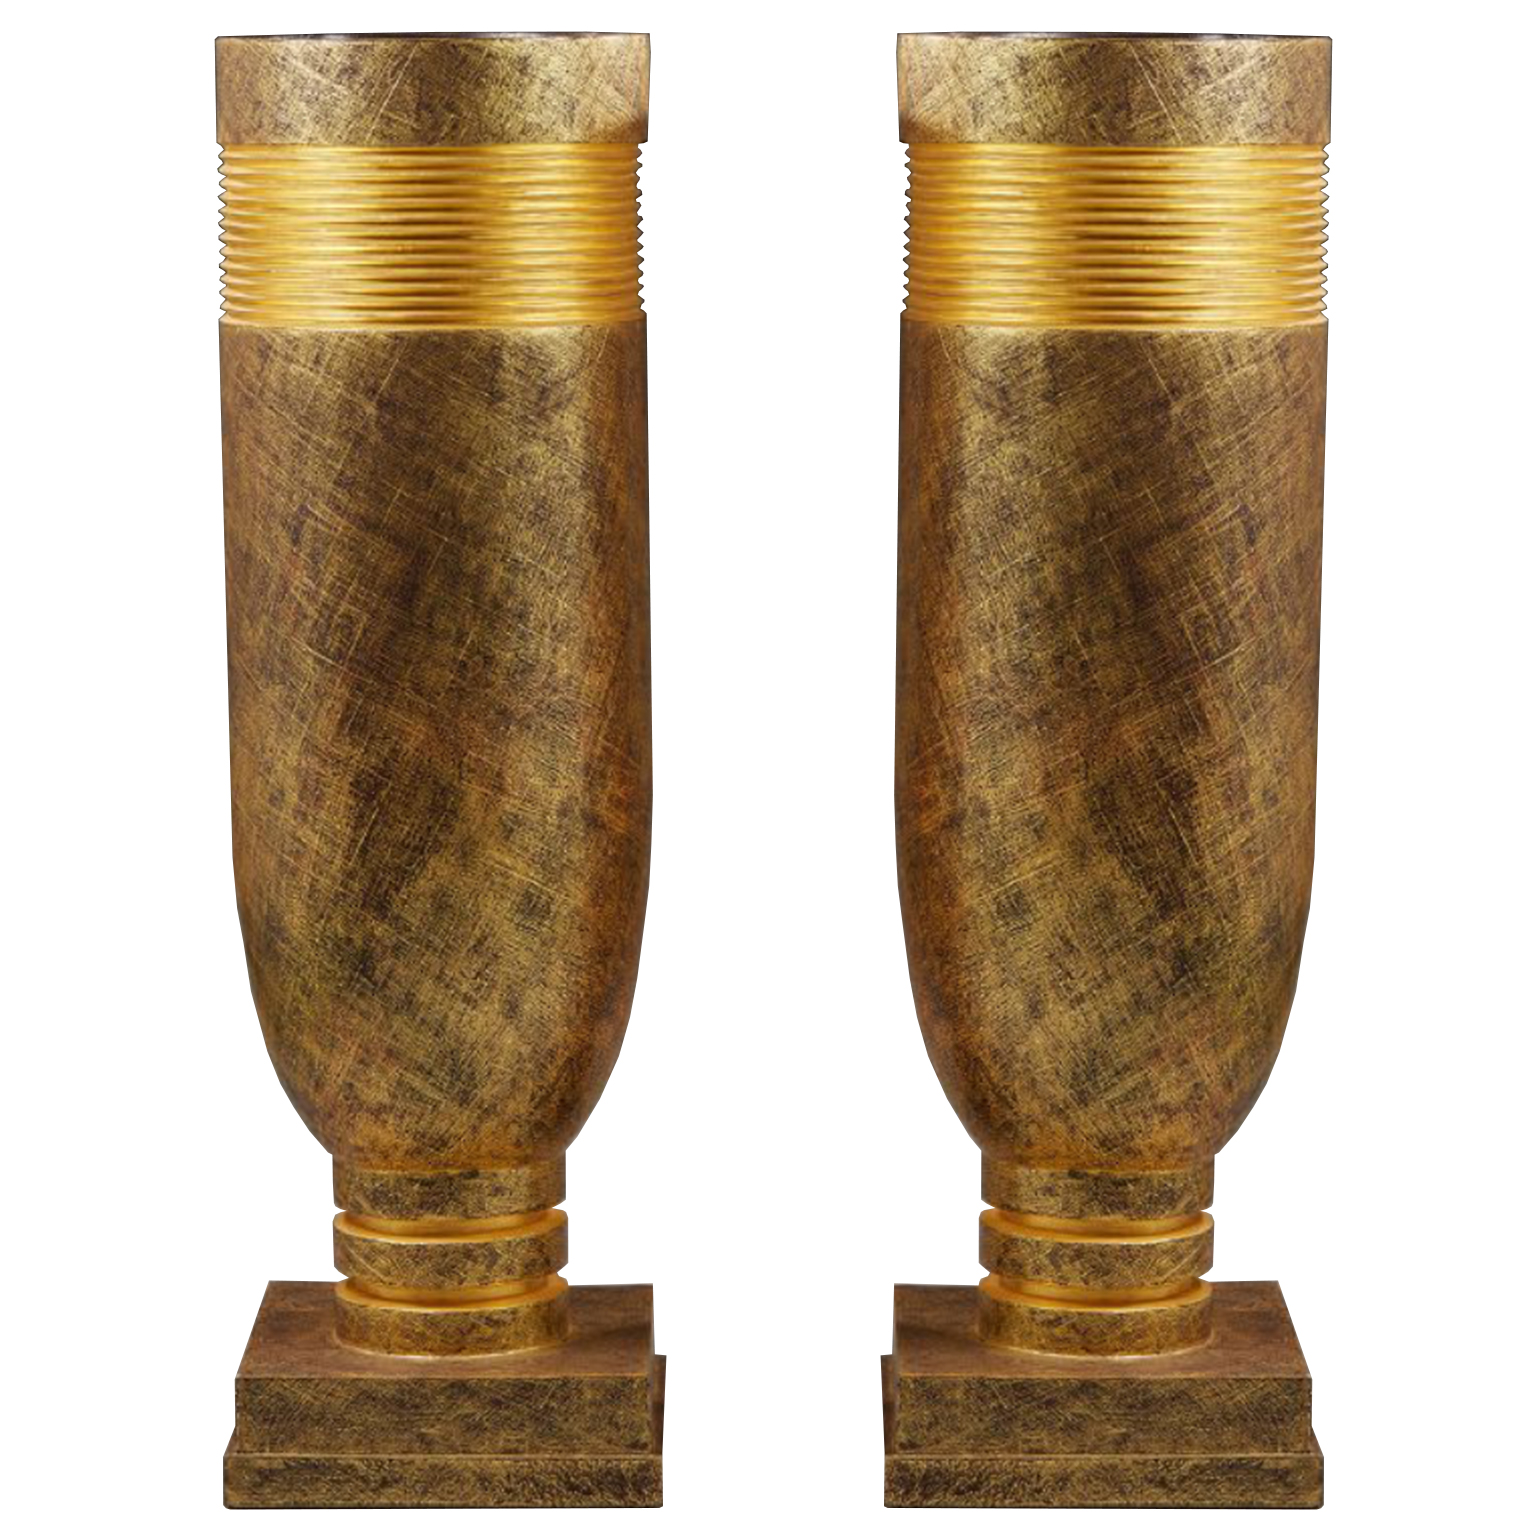 pair of extra large stucco vases in golden patina